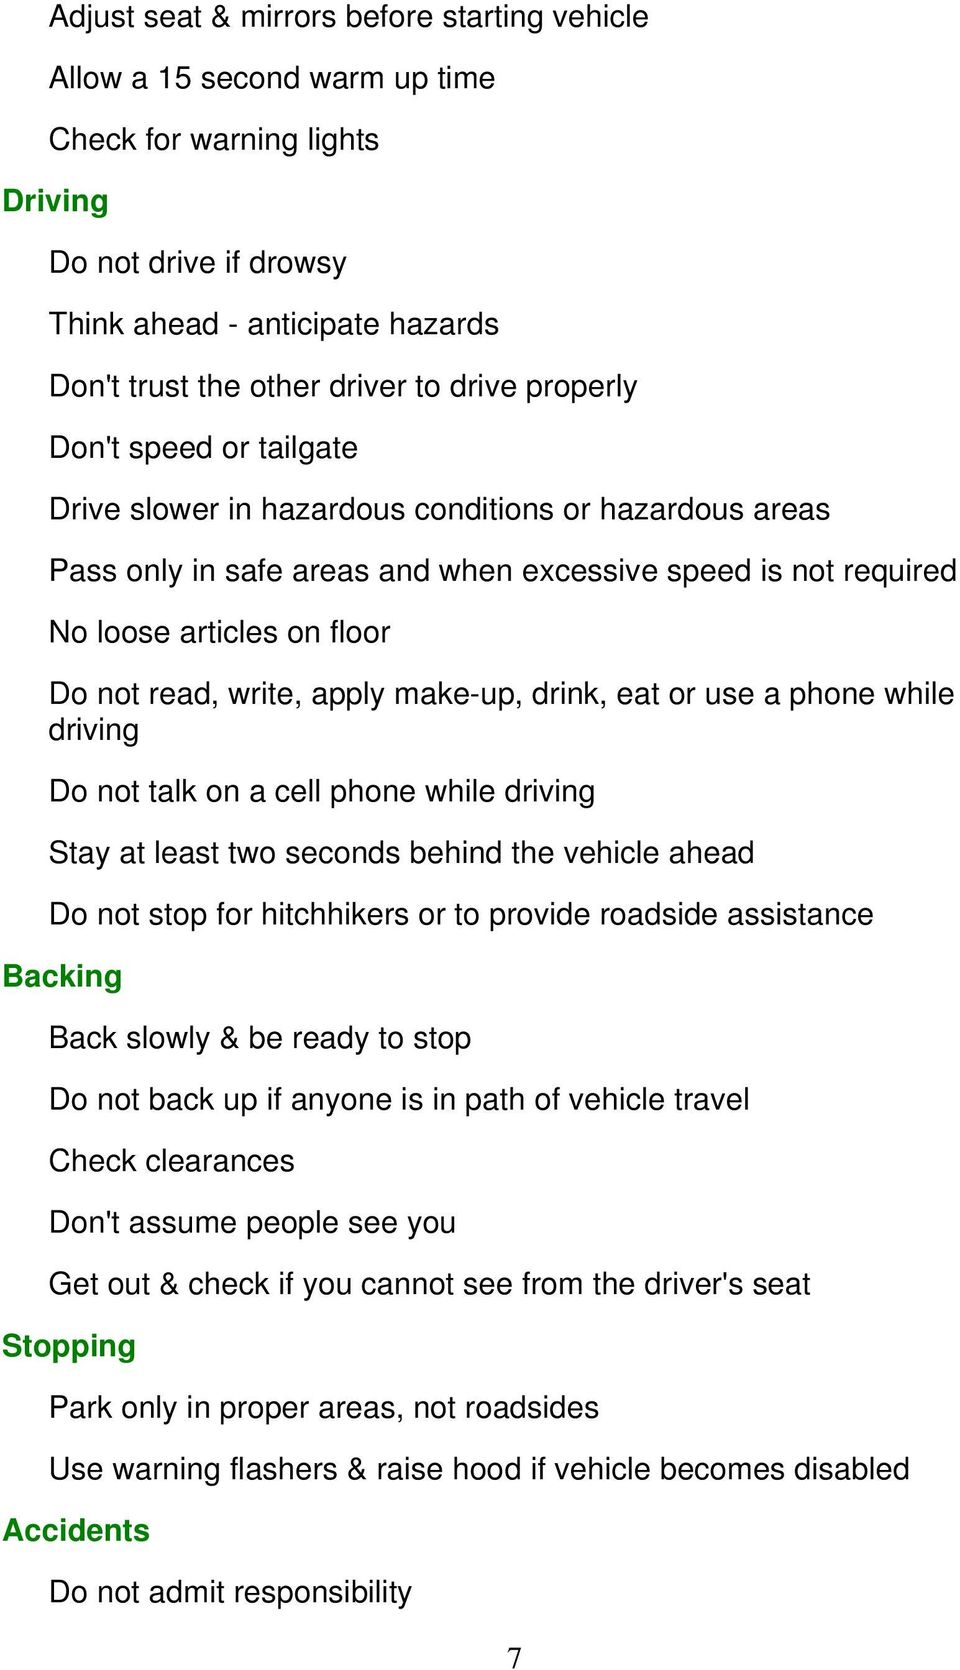 write, apply make-up, drink, eat or use a phone while driving Do not talk on a cell phone while driving Stay at least two seconds behind the vehicle ahead Do not stop for hitchhikers or to provide